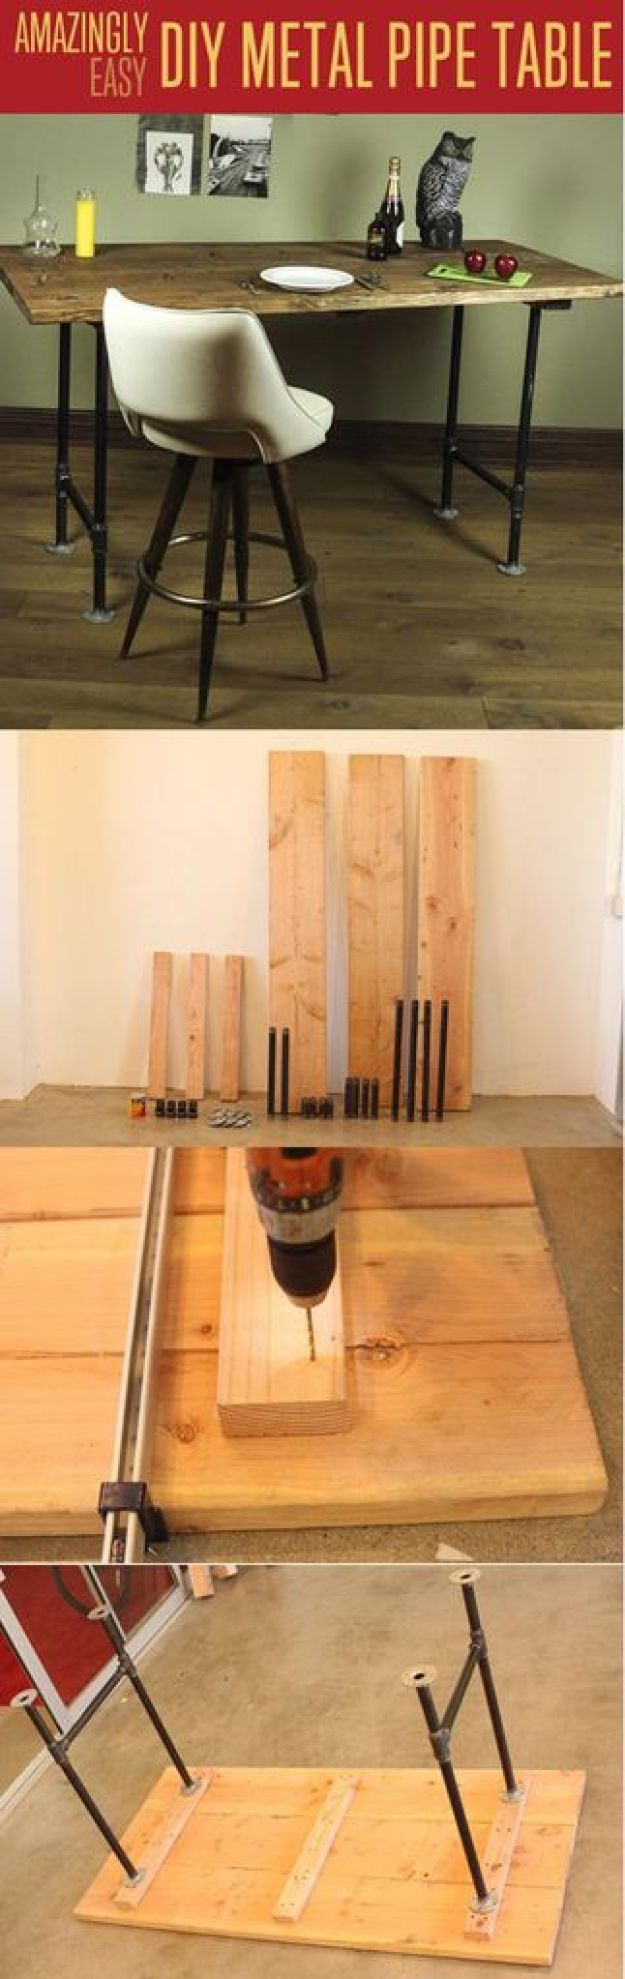 27 Easiest Woodworking Projects For Beginners The Saw Guy